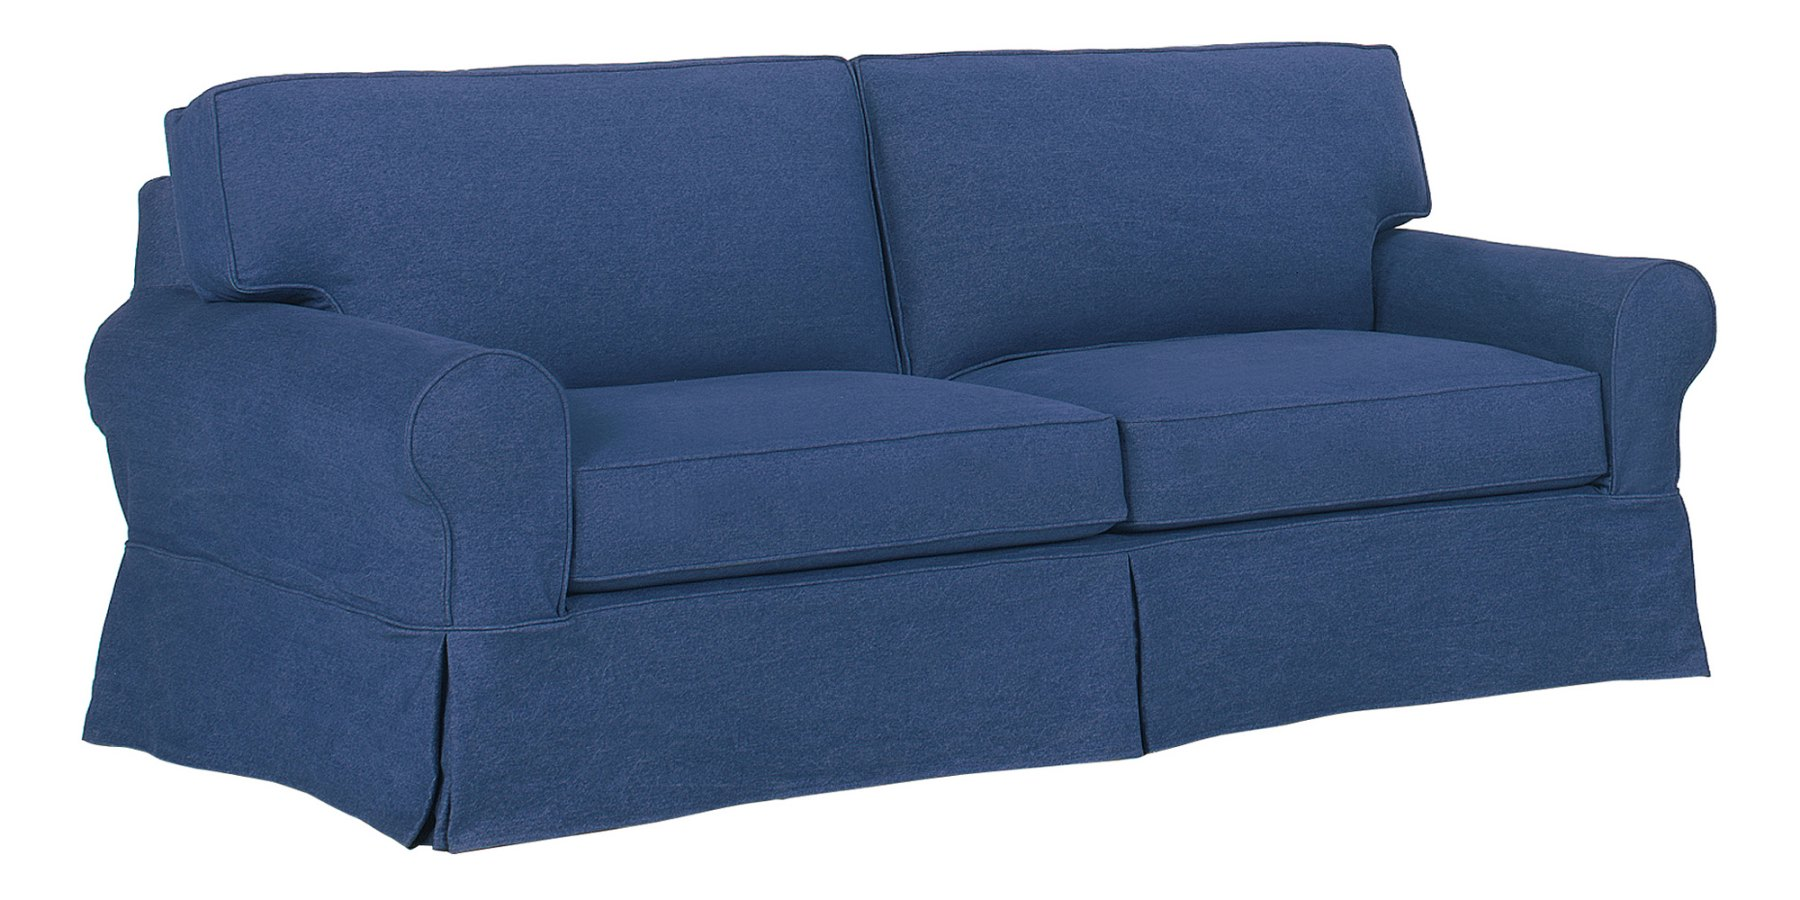 Denim Slipcovered Sofa With Chaise & Ottoman